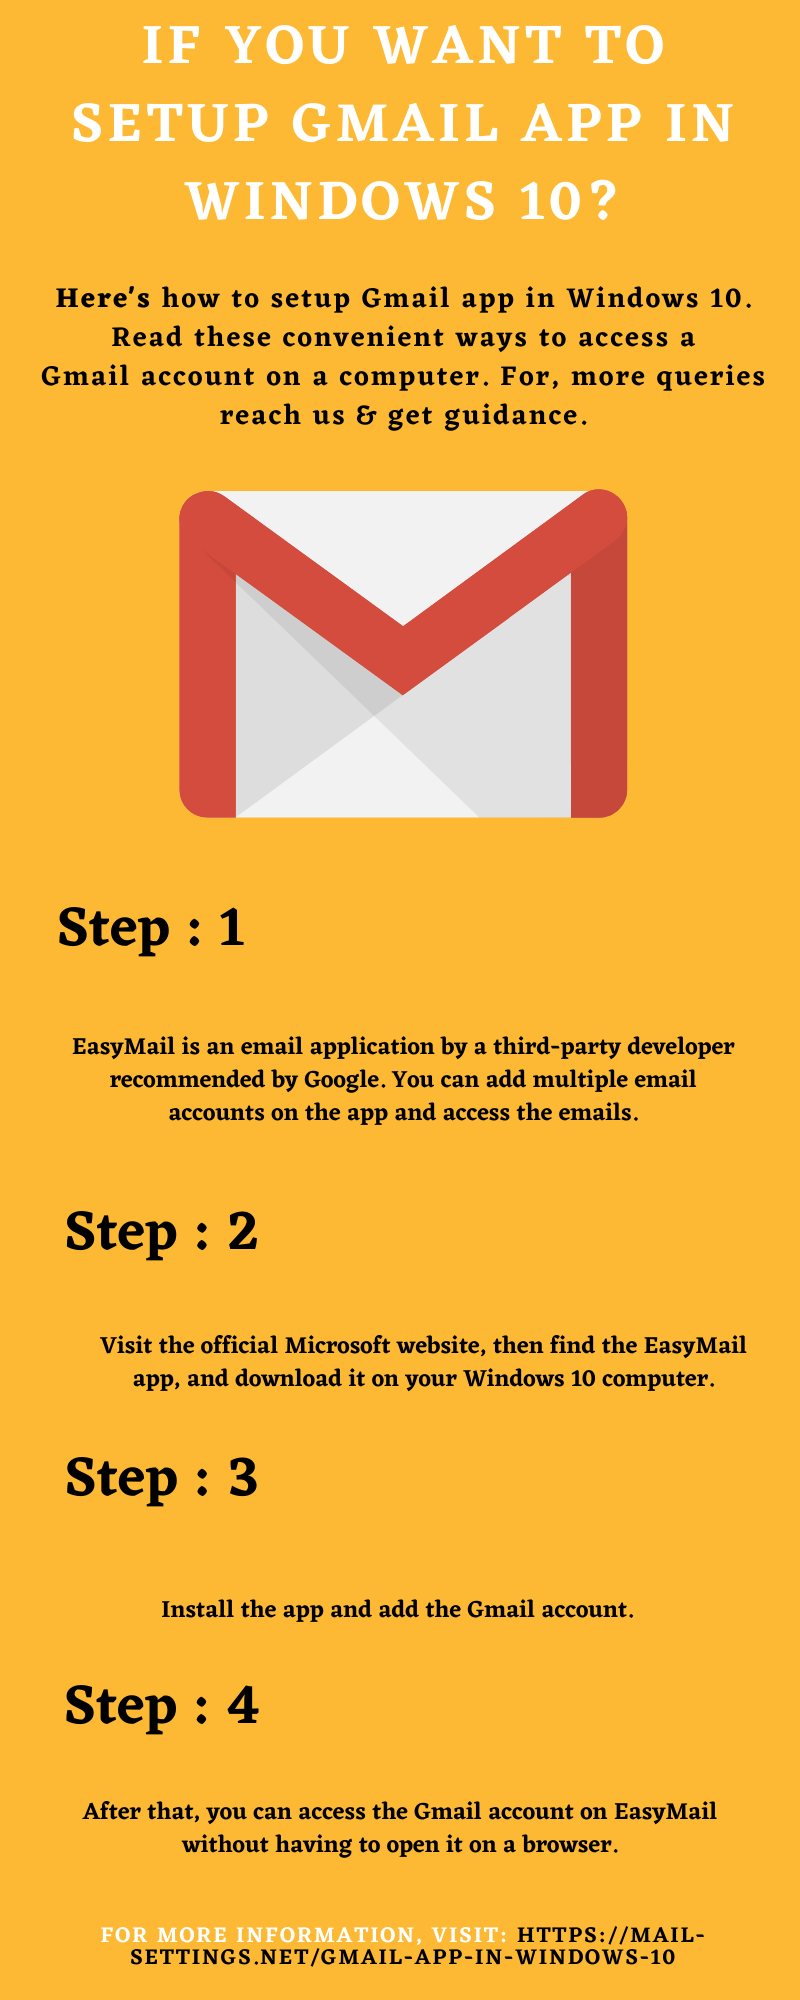 Do You Want To Setup Gmail App In Windows 10?